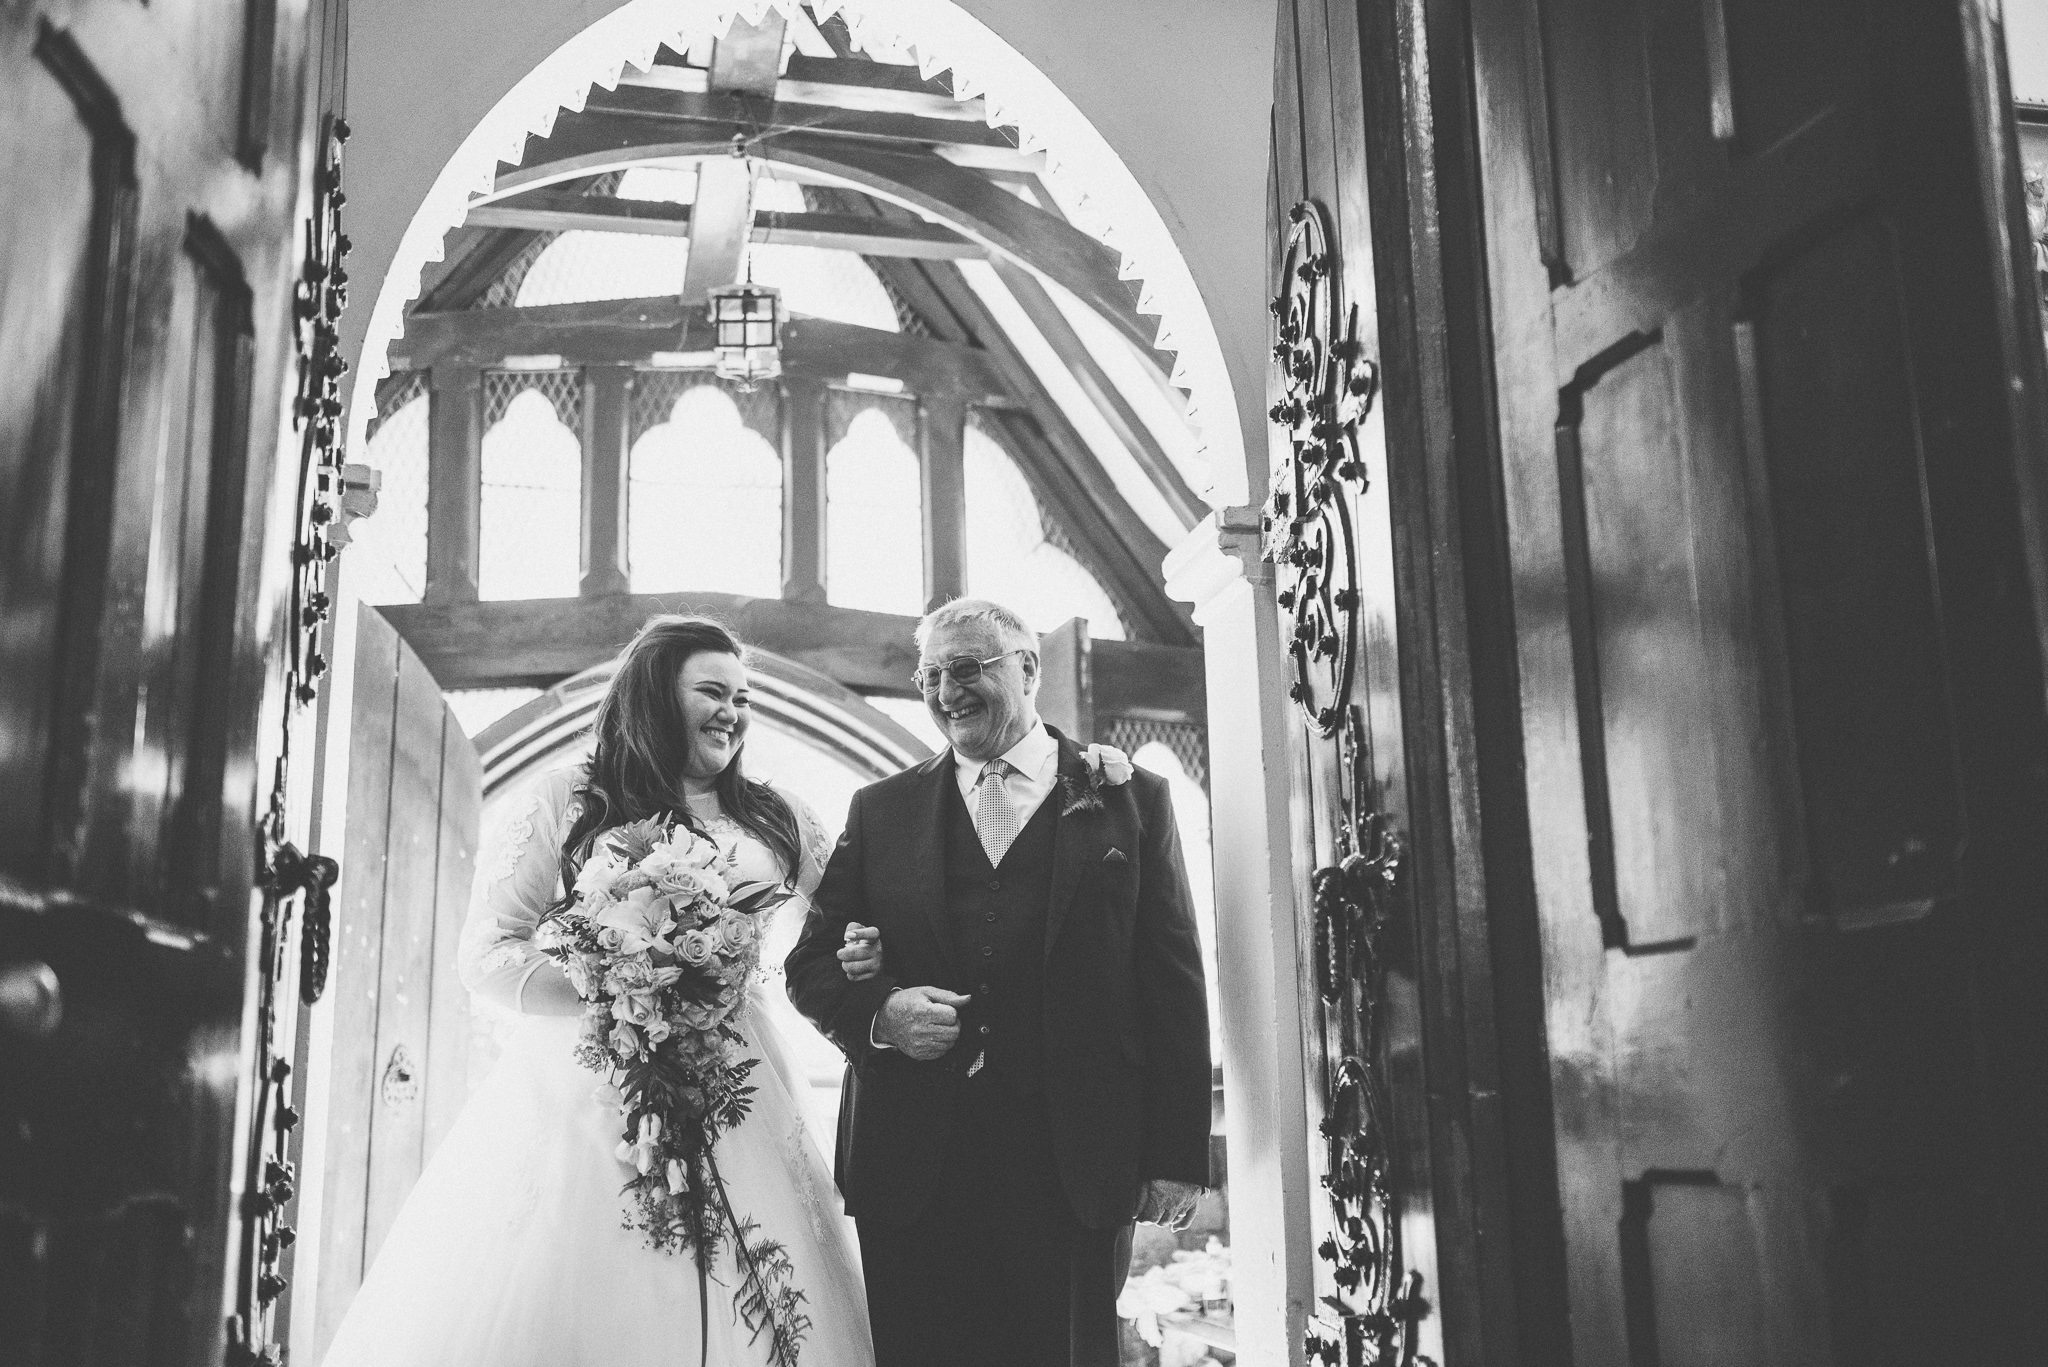 Bride and her dad smile at each other at the entrance to the church